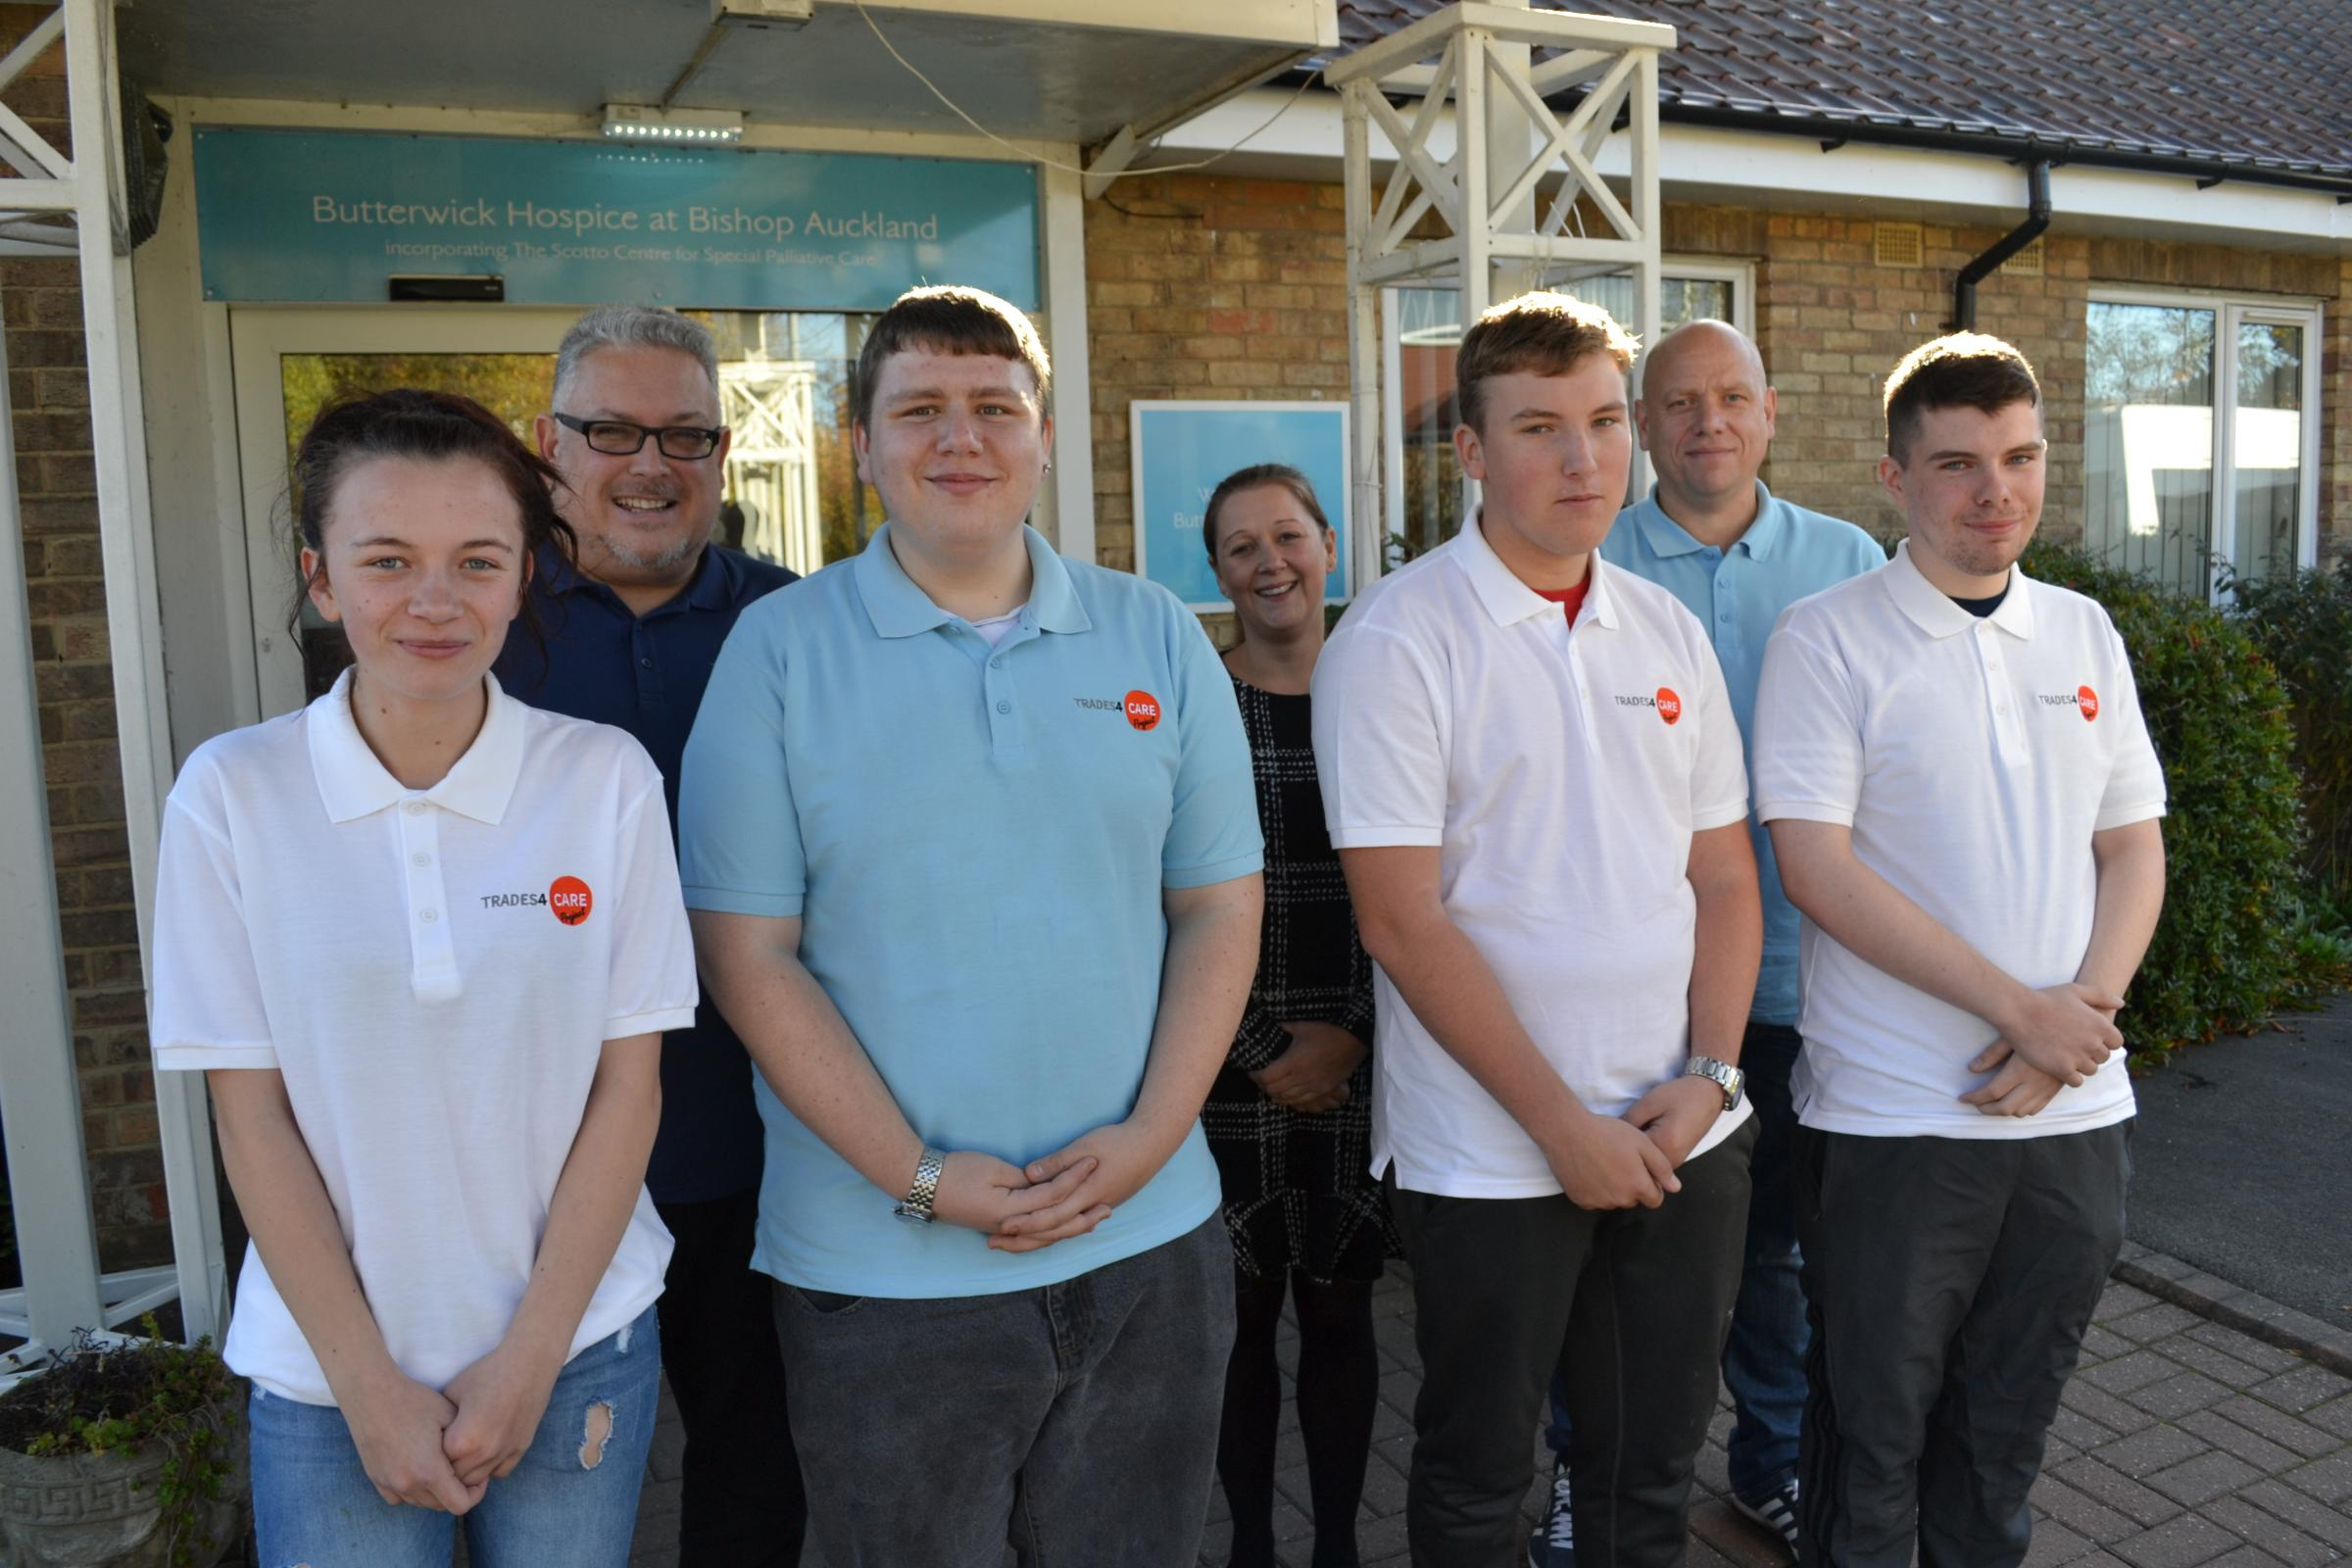 SKILLS: Bishop Auckland College students with head of school Michelle Andelin and Trades4Care co-founders Andrew Coxon and Charlie Wright